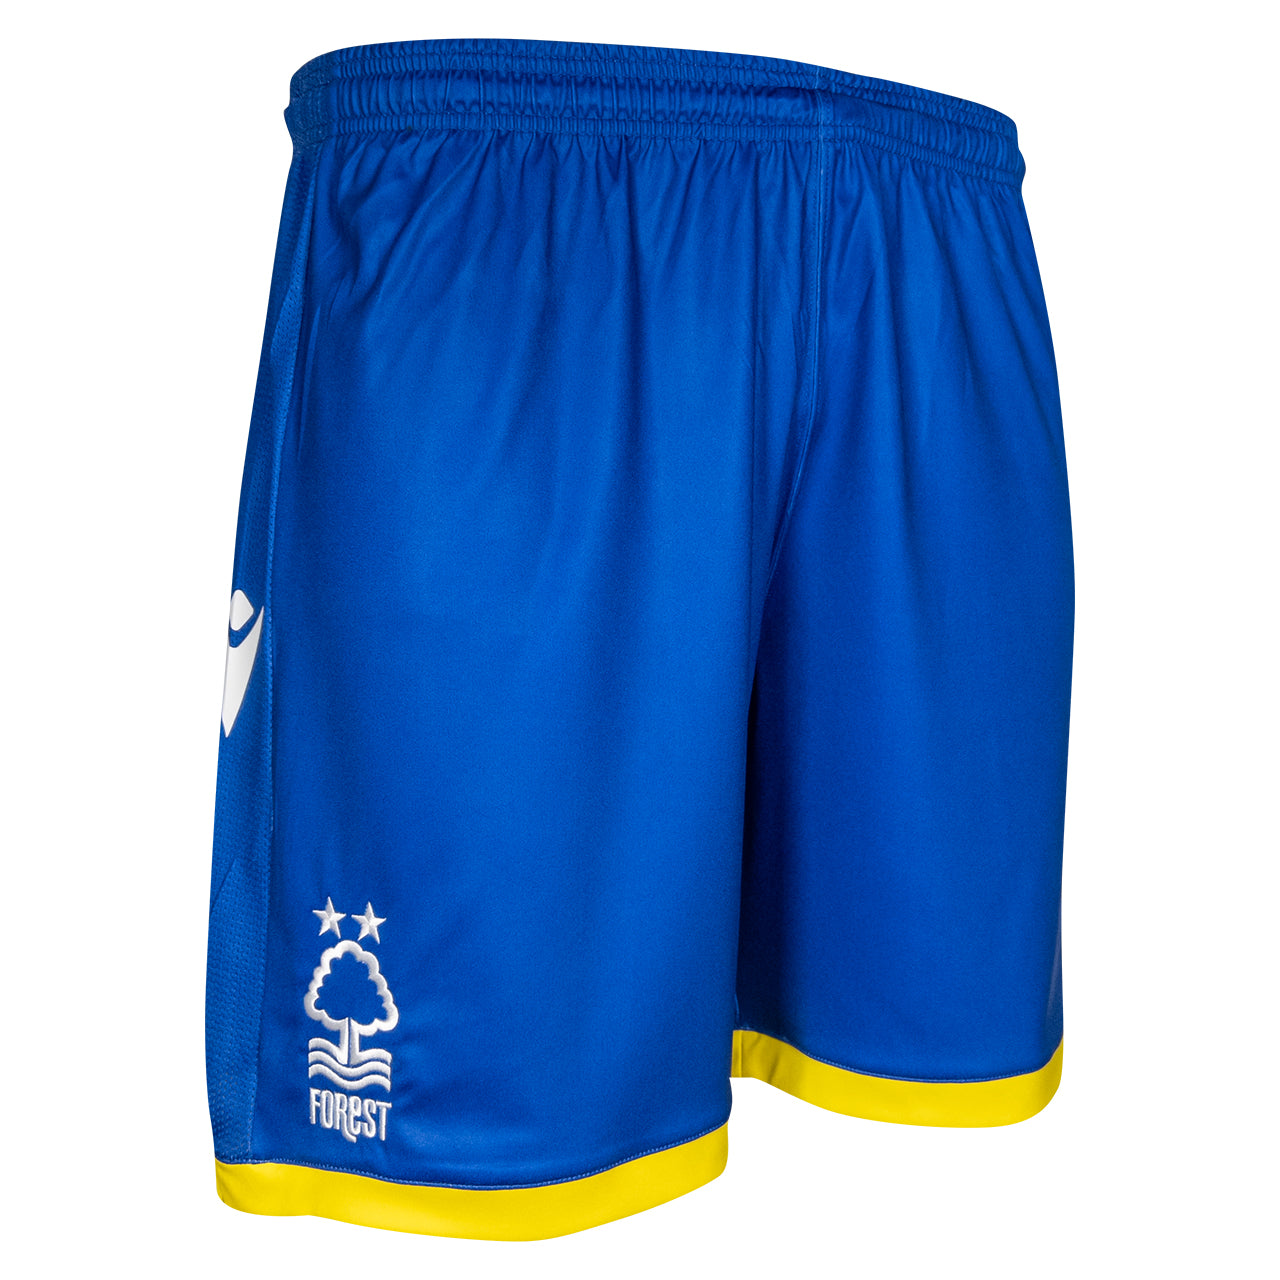 NFFC Mens Away Shorts 2020/21